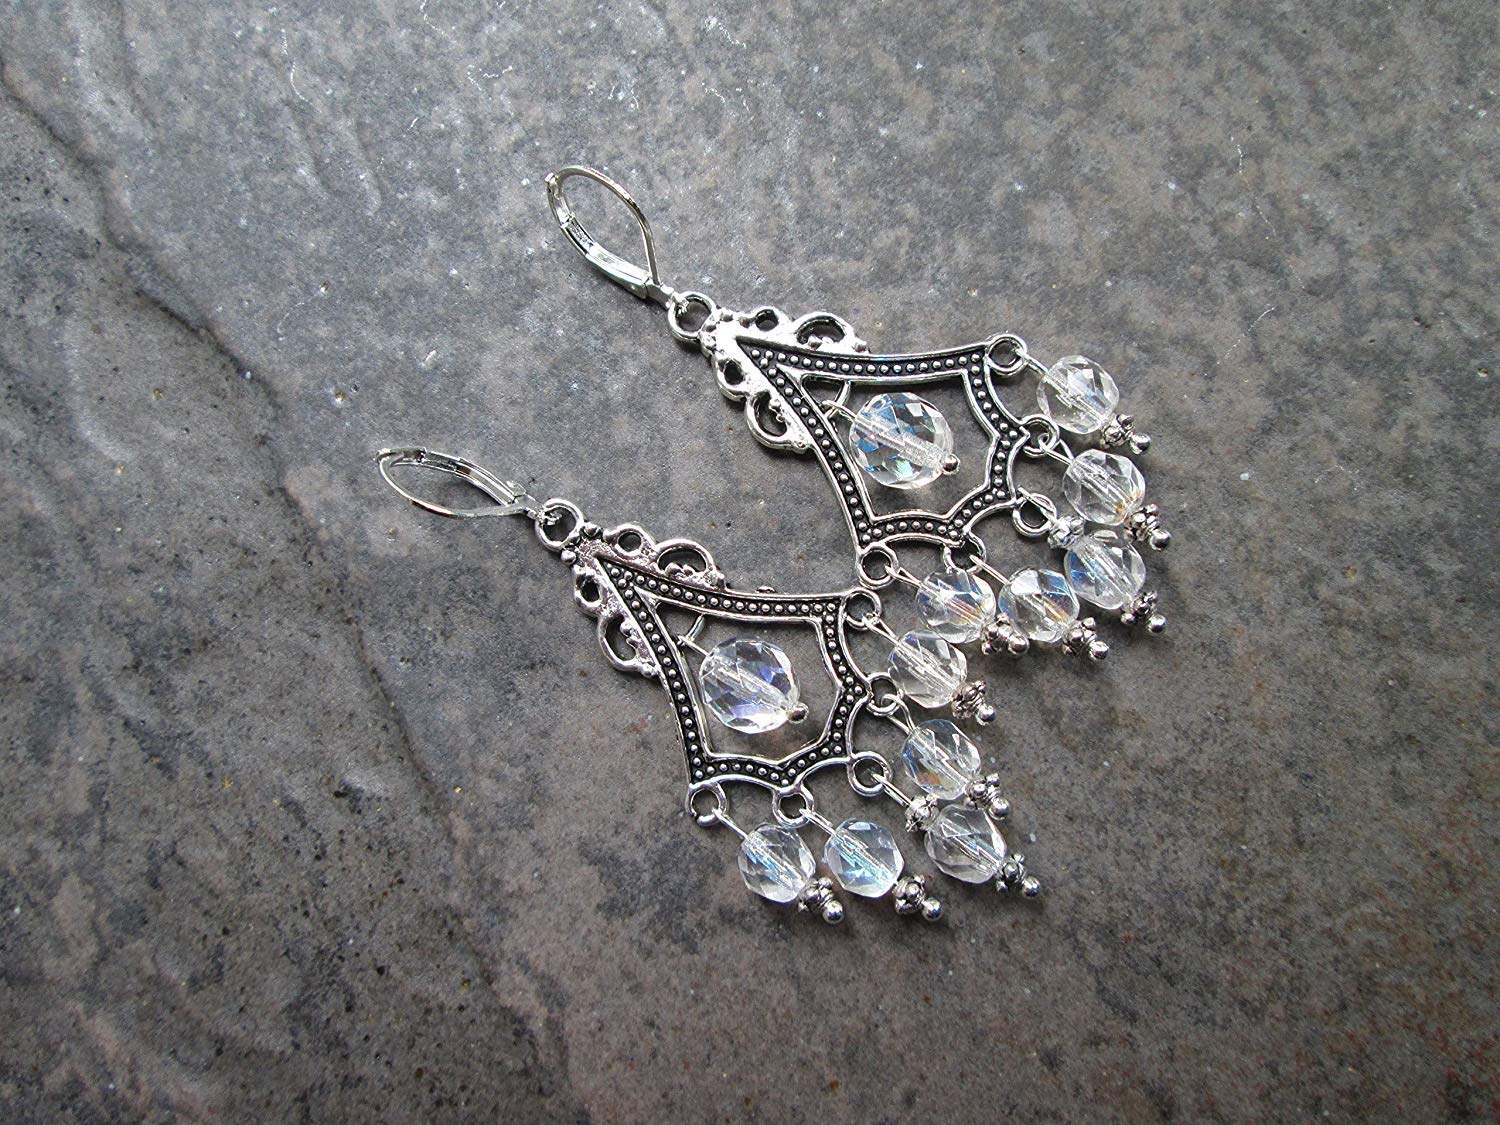 c17ef0c83 Get Quotations · Aurora Borealis sparkly Chandelier Earrings with Sterling  Silver lever backs Boho Chic earrings